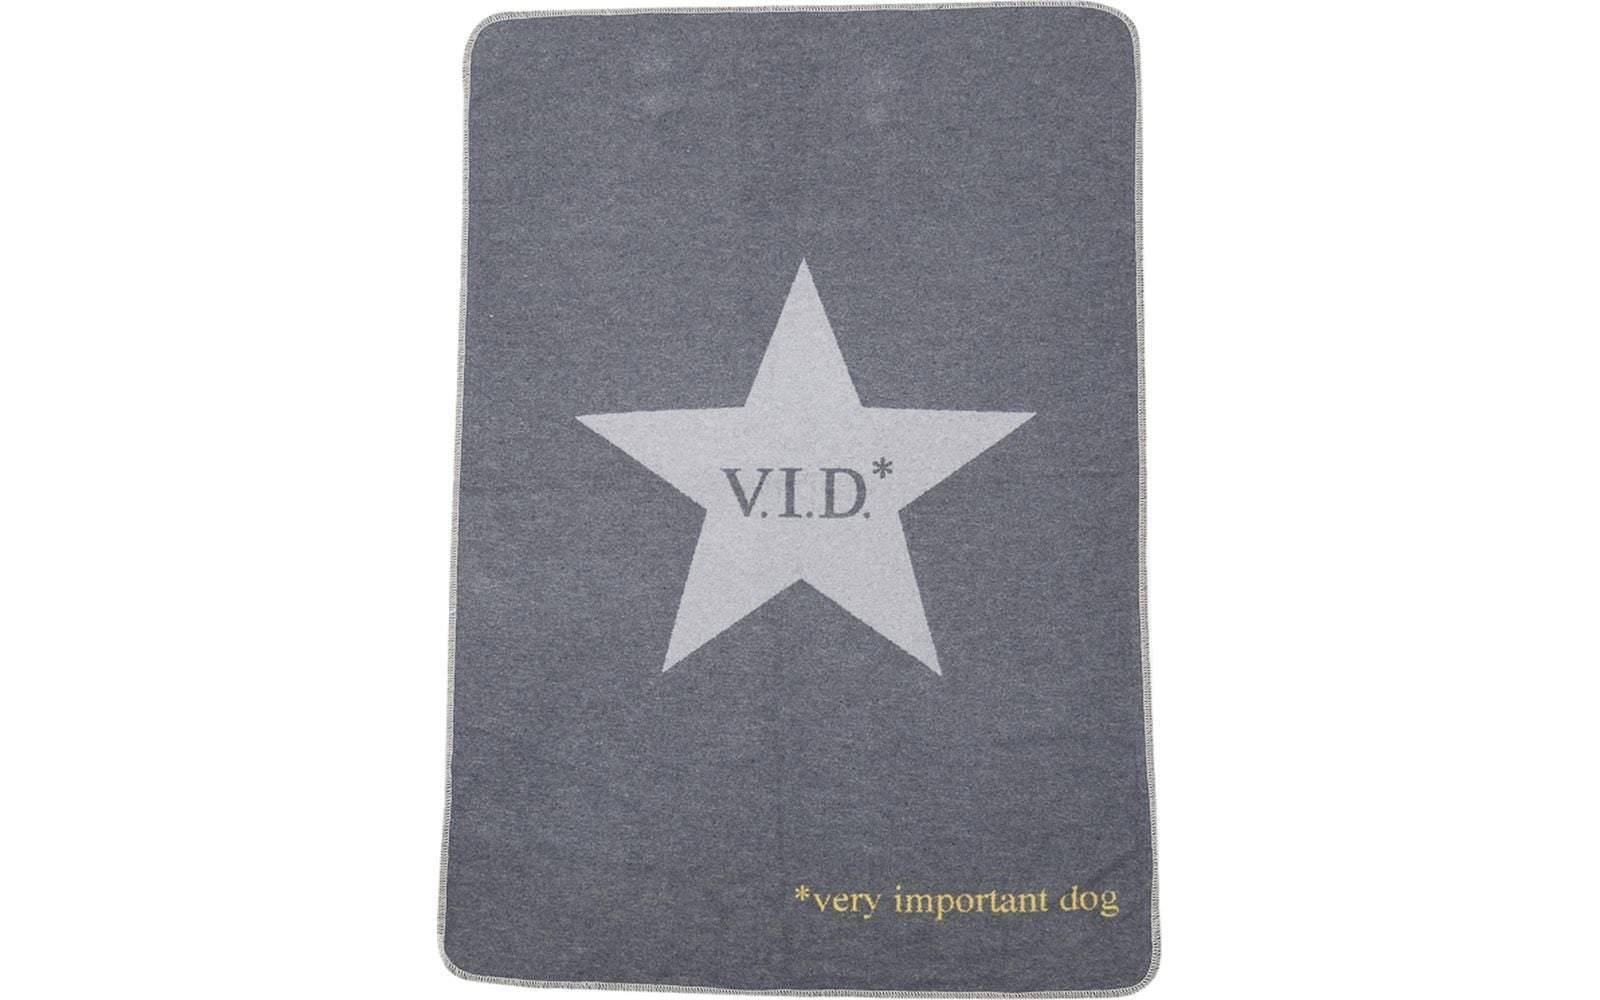 DOG // Very Important Dog blanket - Loja Real